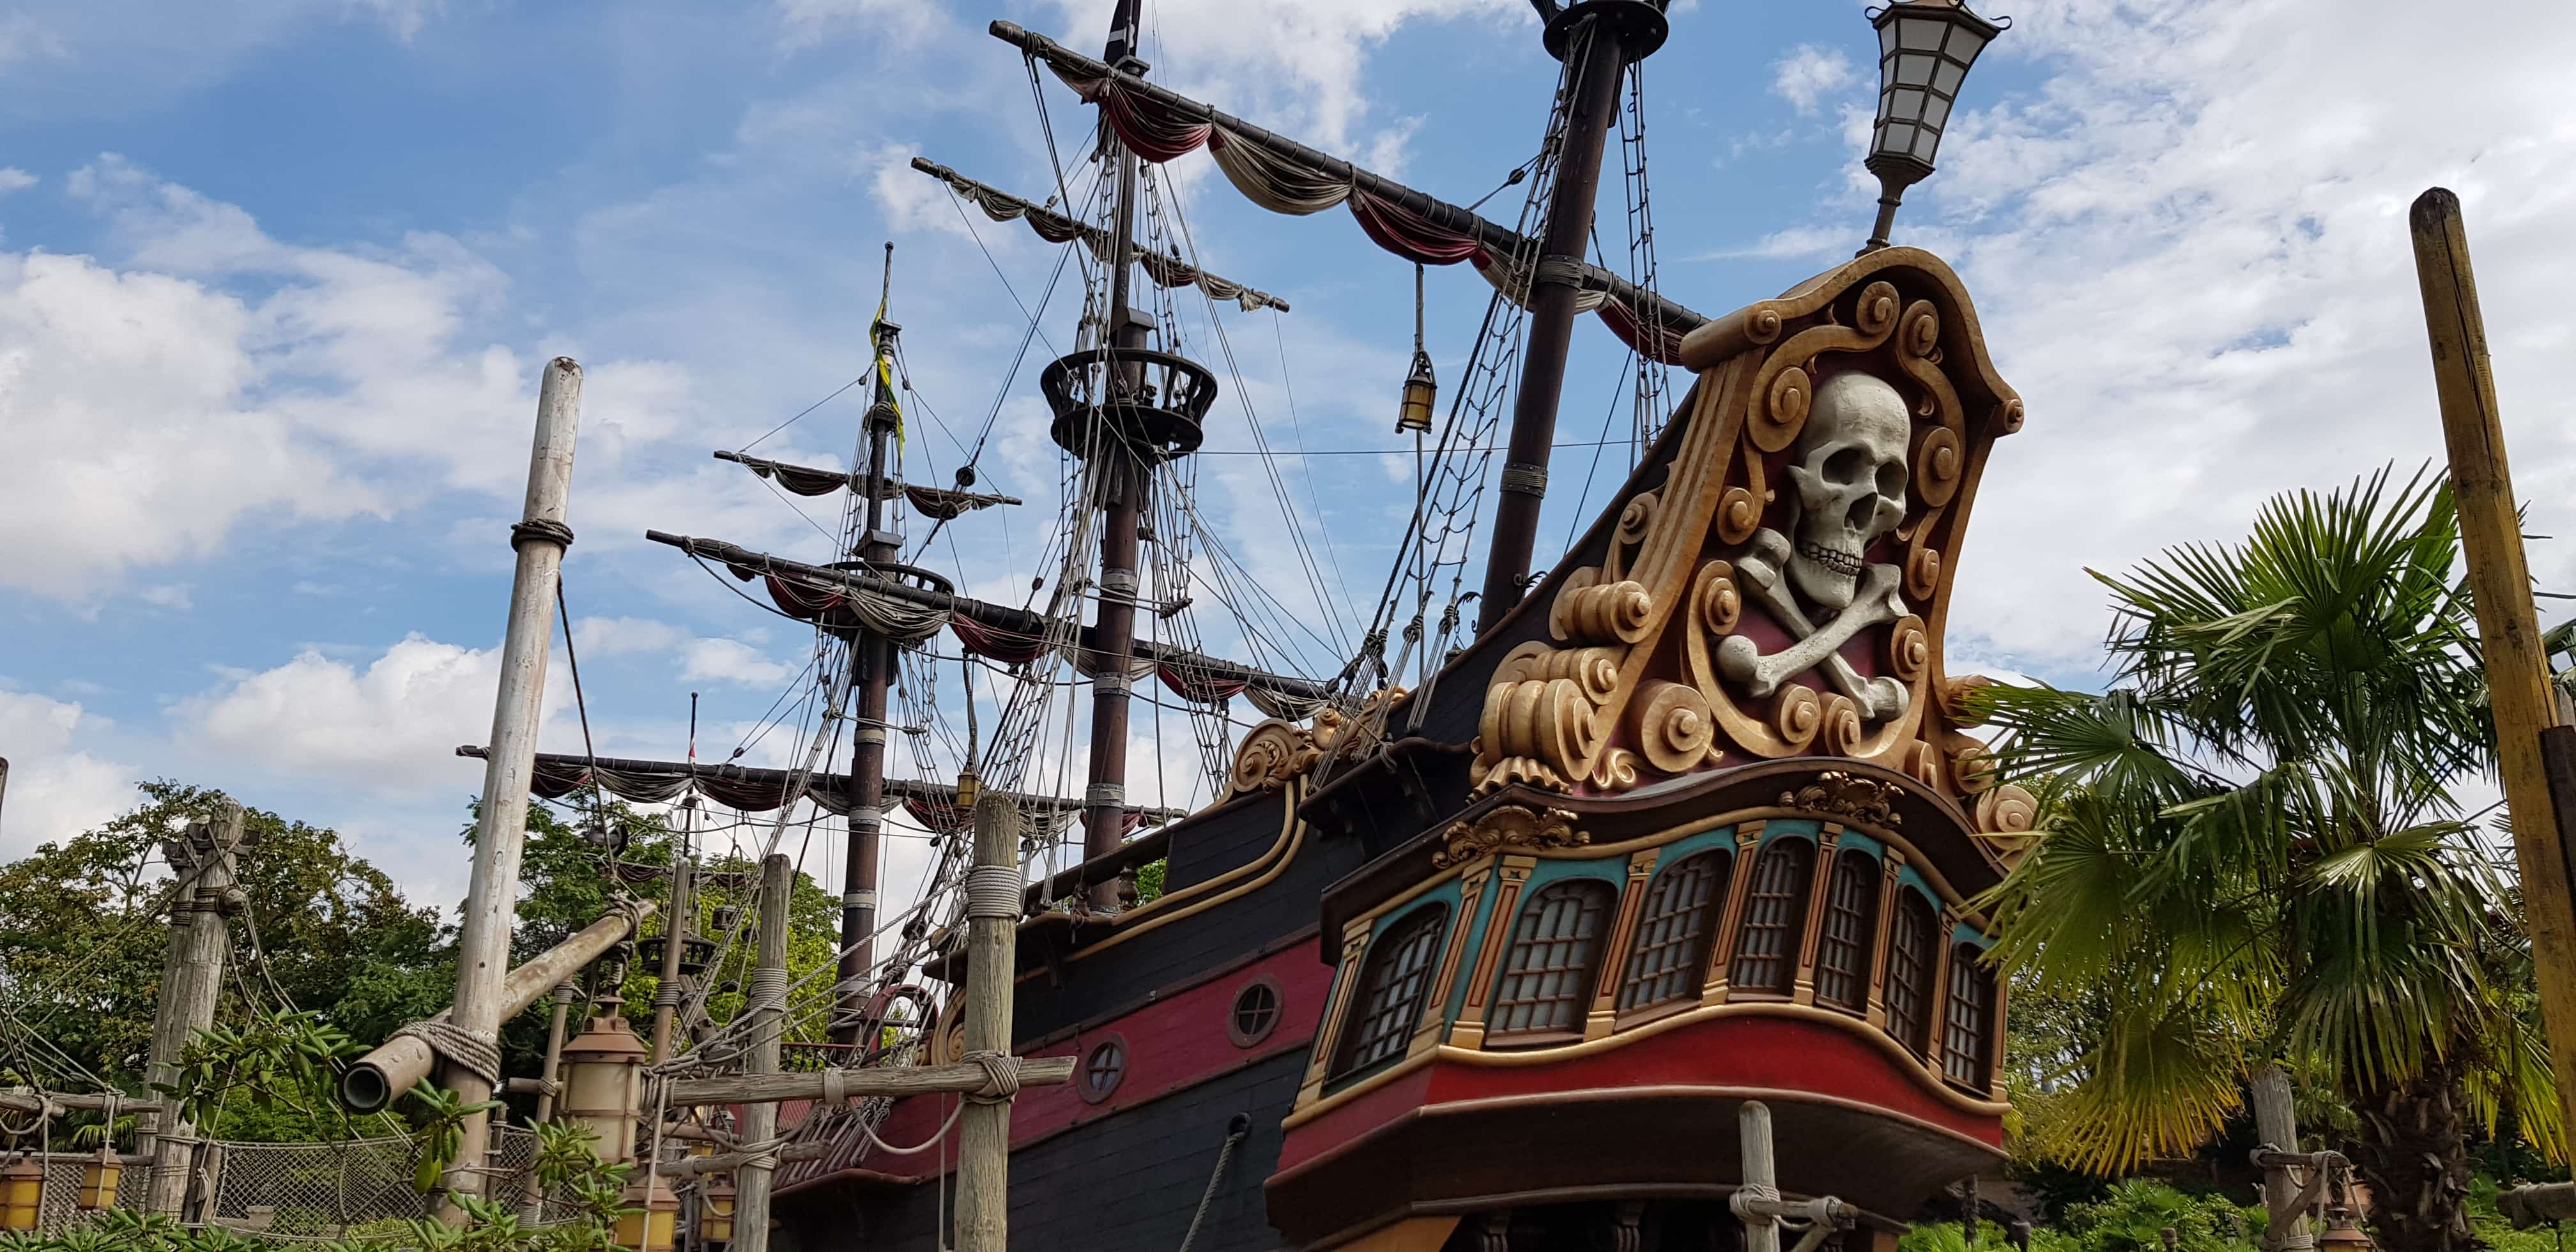 Pirate ship Adventureland Disneyland Paris